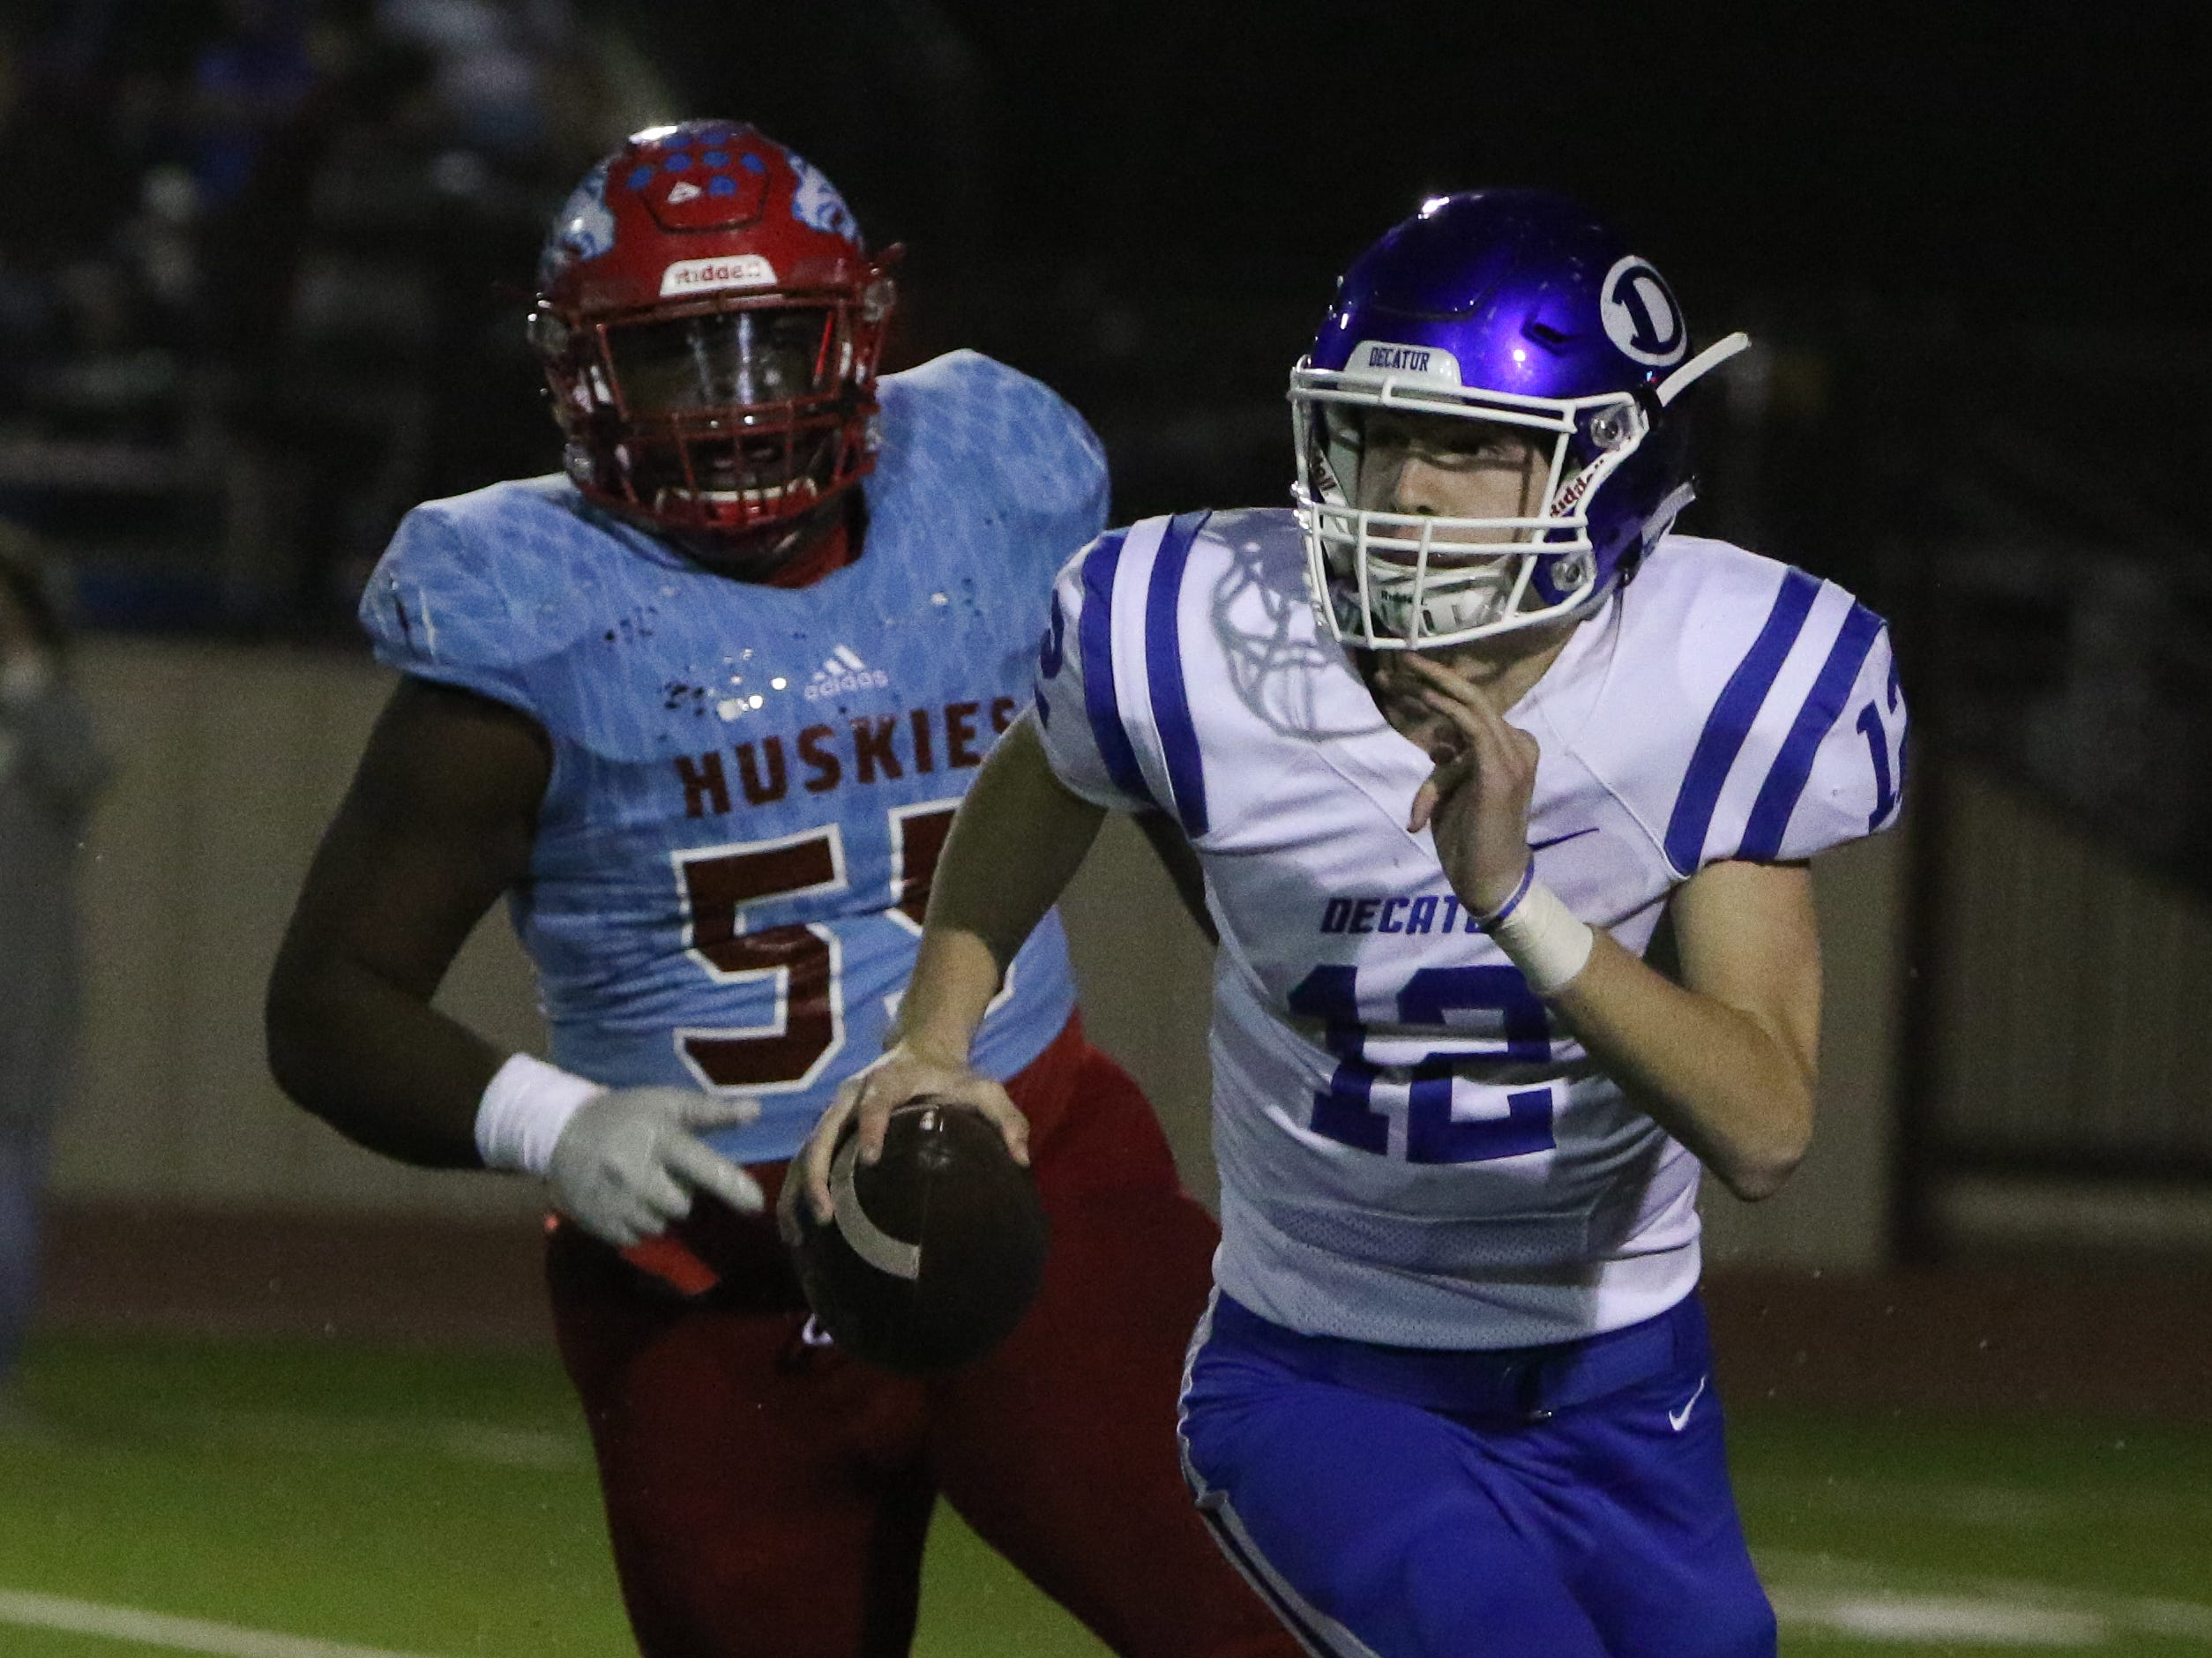 Decatur's Roman Fuller scrambles out of the pocket in the playoff game against Hirschi Friday, Nov. 30, 2018, at Newton Field in Graham.